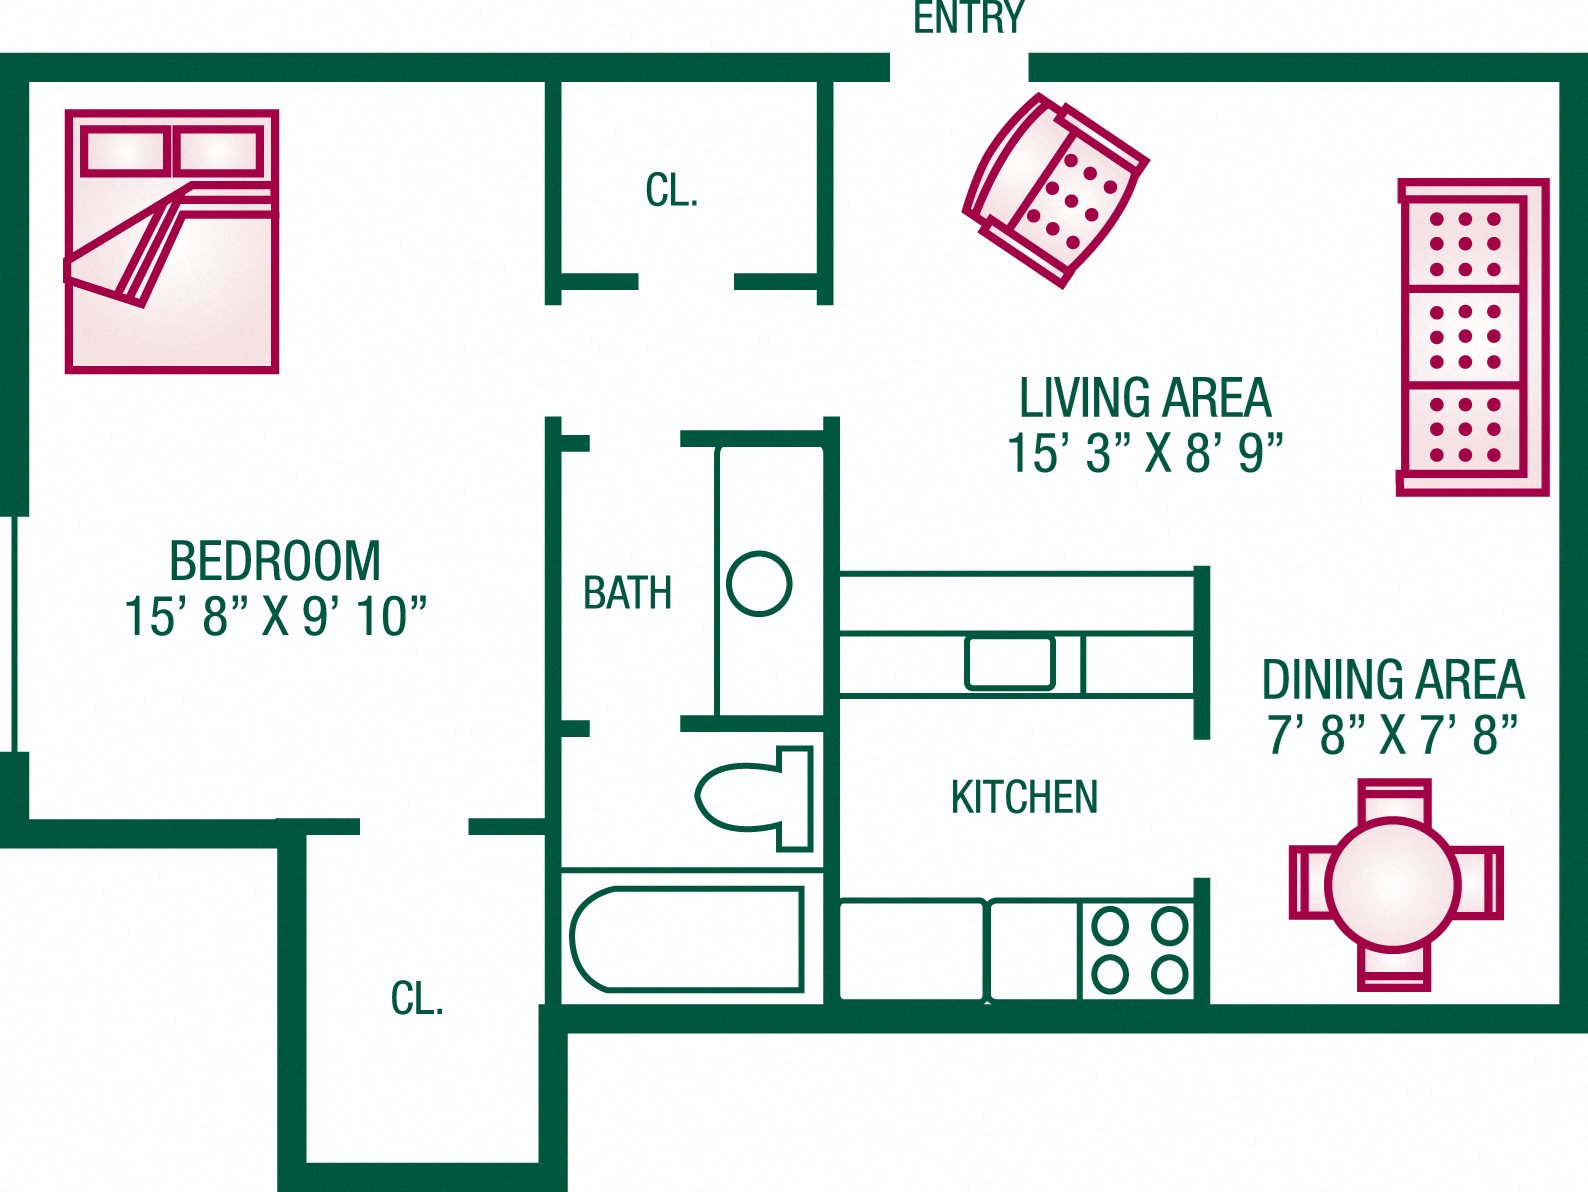 1 Bedroom / 1 Bath - Plan D Floor Plan 2